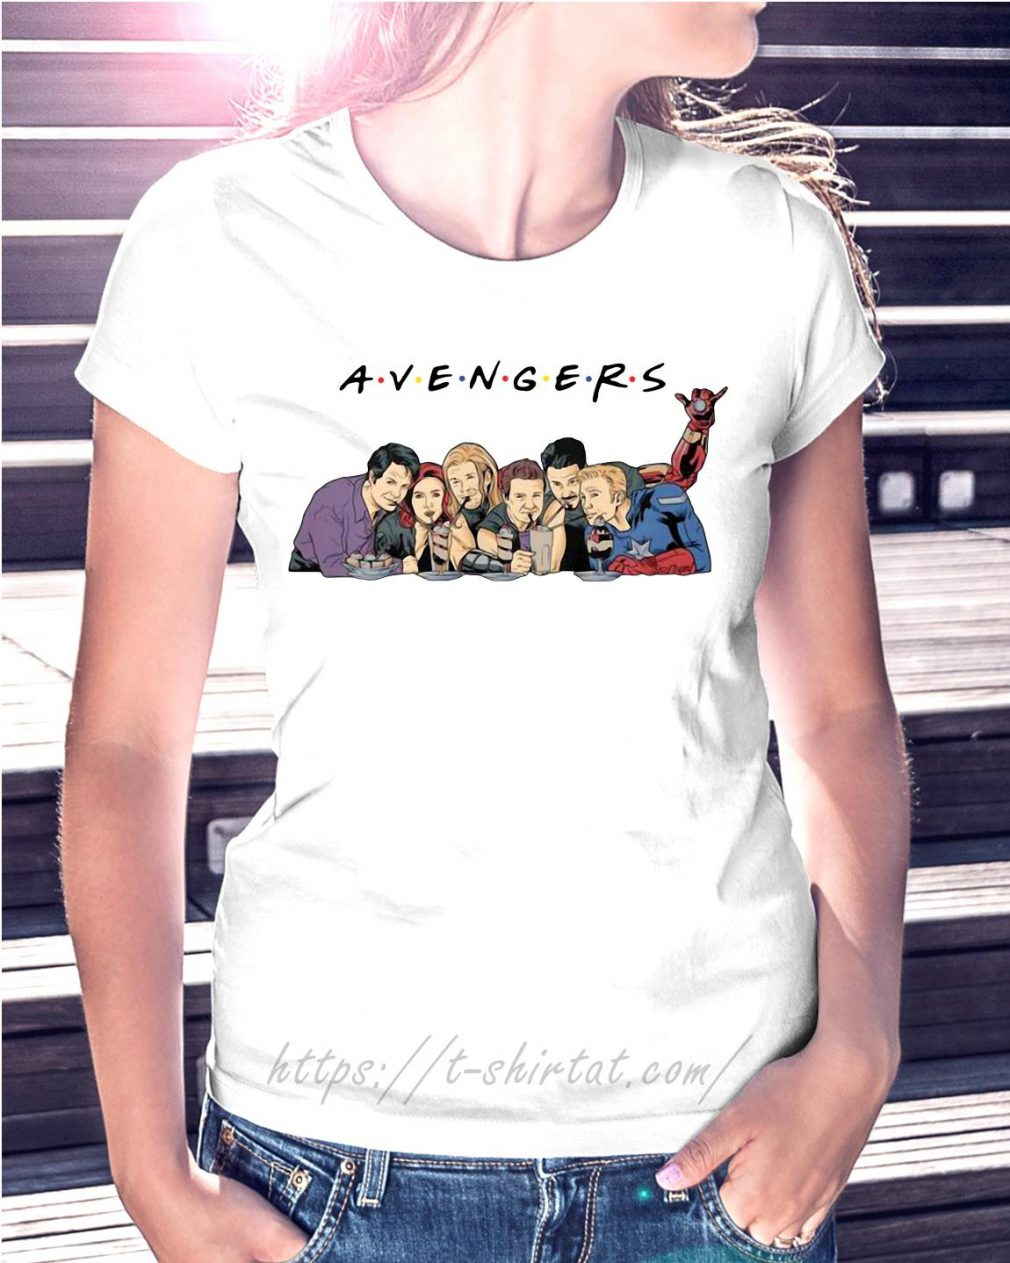 Avengers friends hulk black widow Thor Hawkeye Captain America iron man